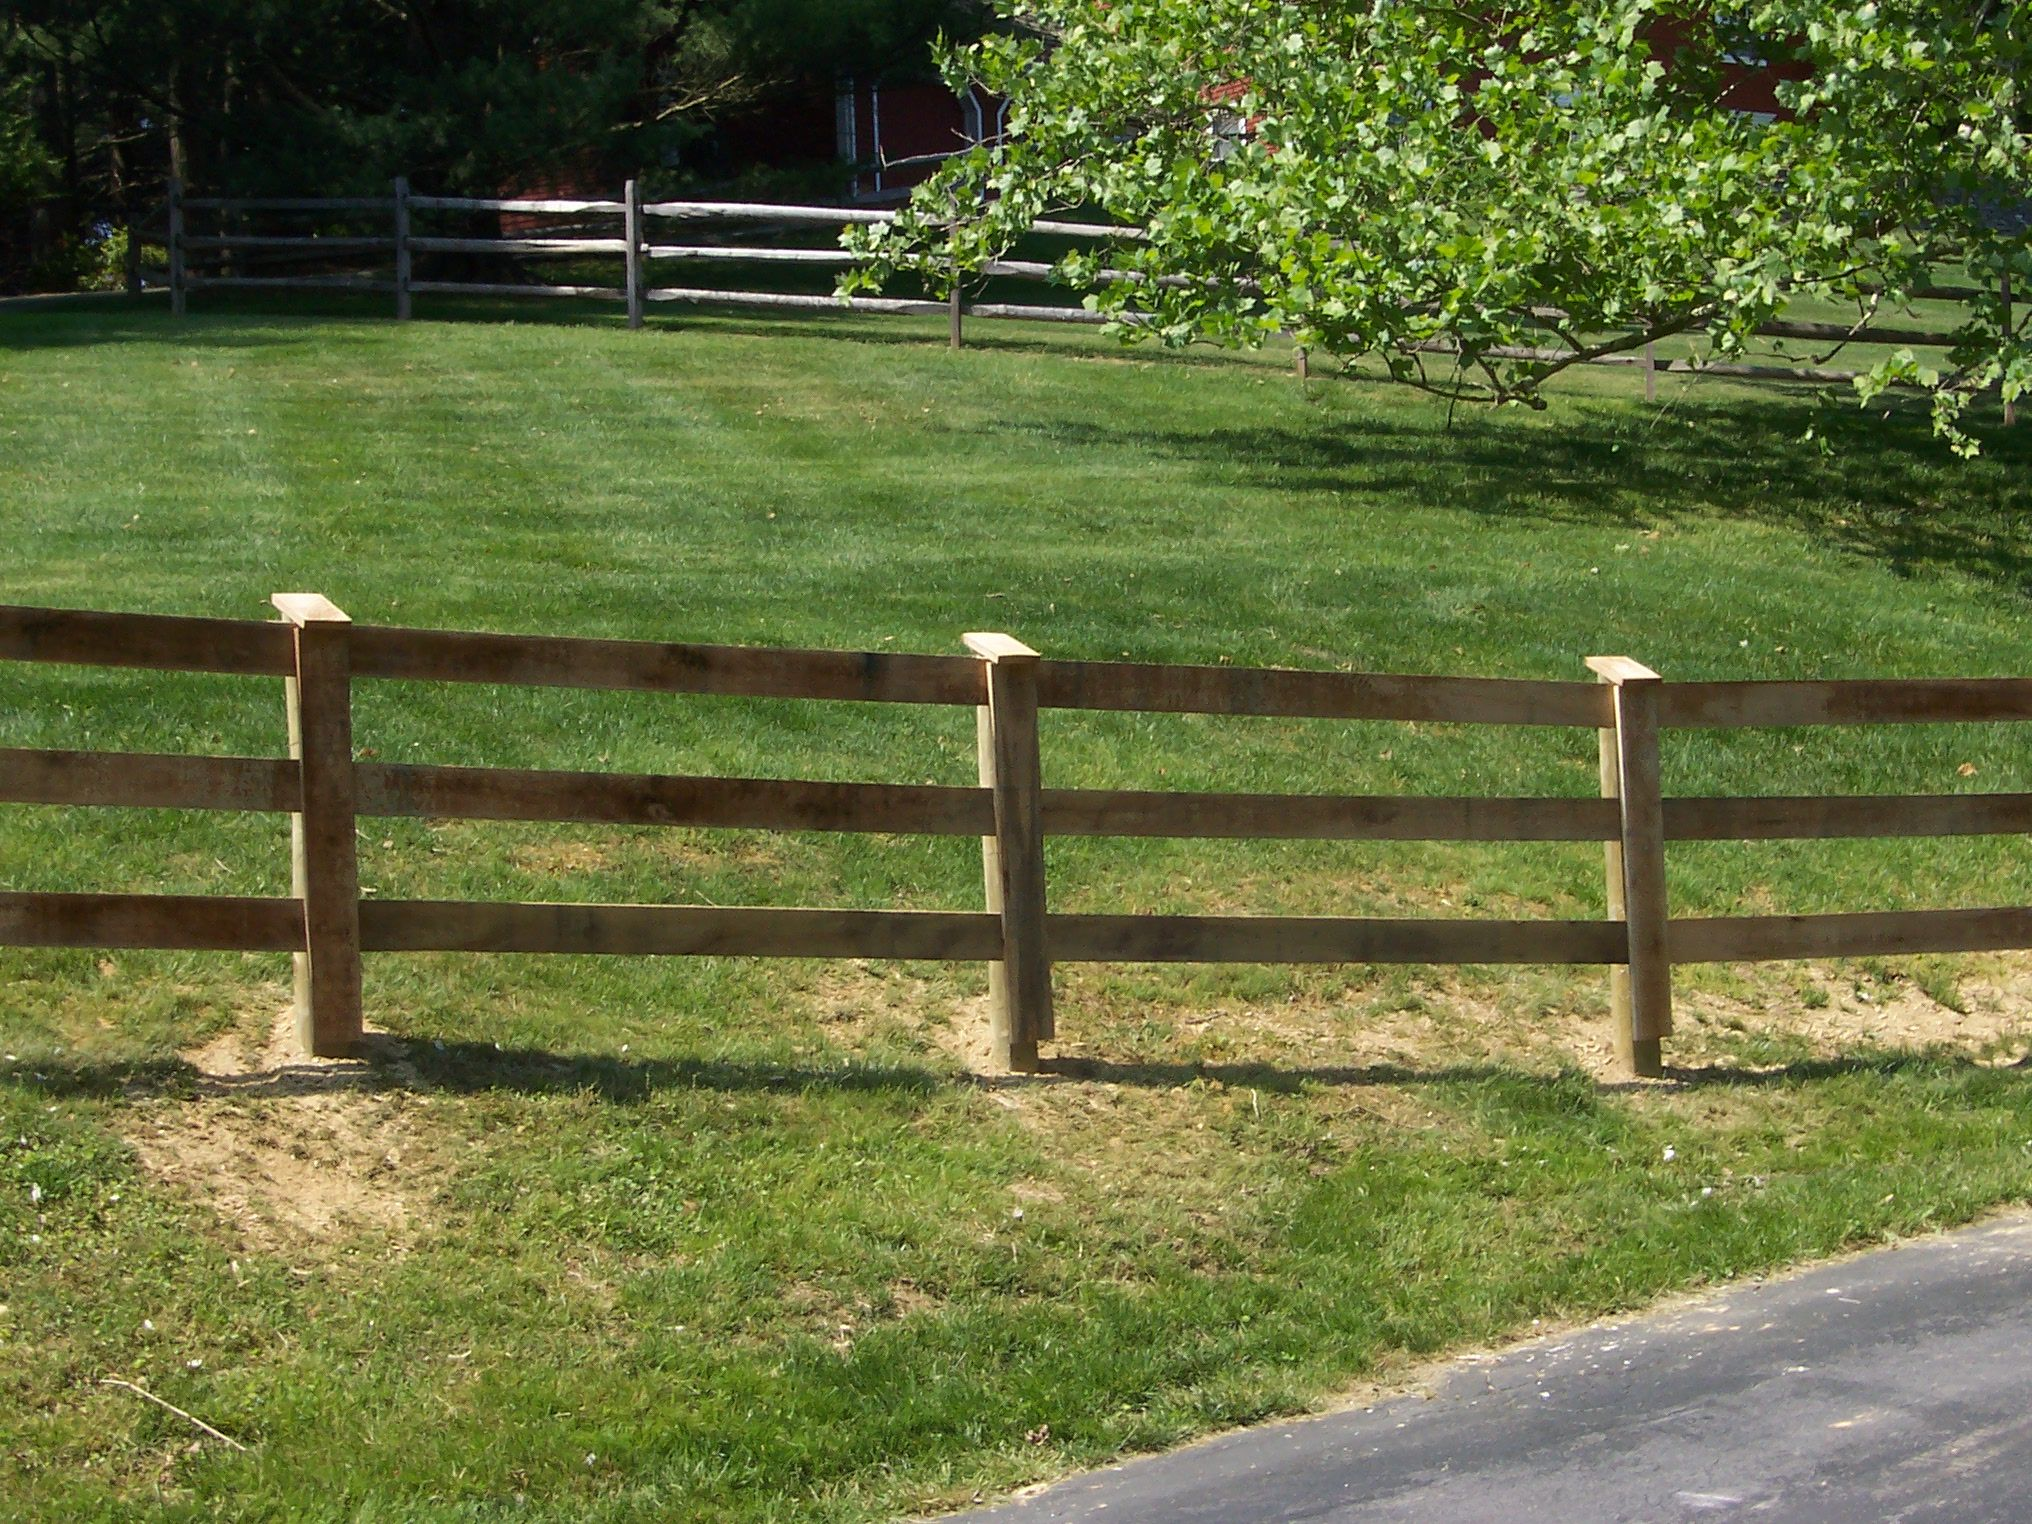 Wood 3 board oak paddock fence wood estate paddock fence explore wood fences a natural and more baanklon Gallery